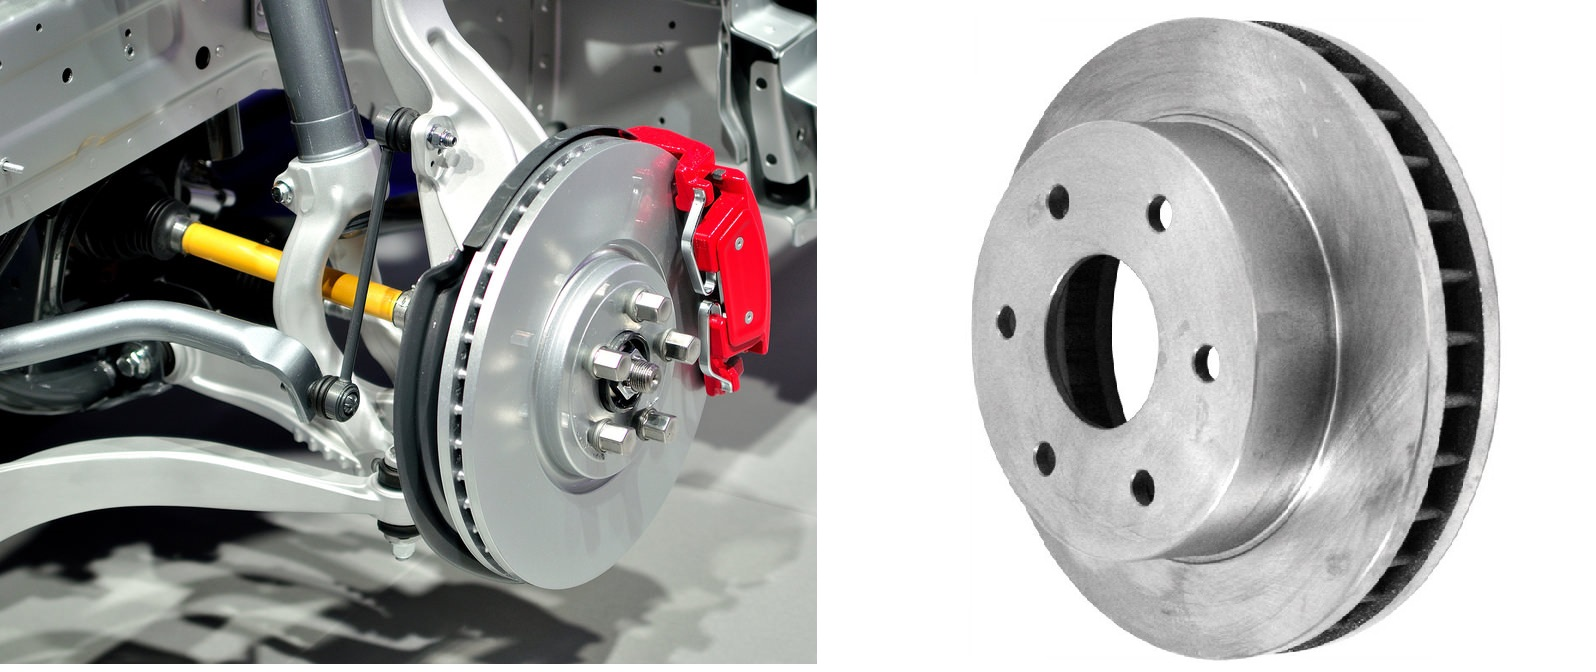 Mostly In Cars Instead Of Disc With Holes A Vented Is Used As Shown Figure Above Hollow Es Are Kept Between Two Plates For